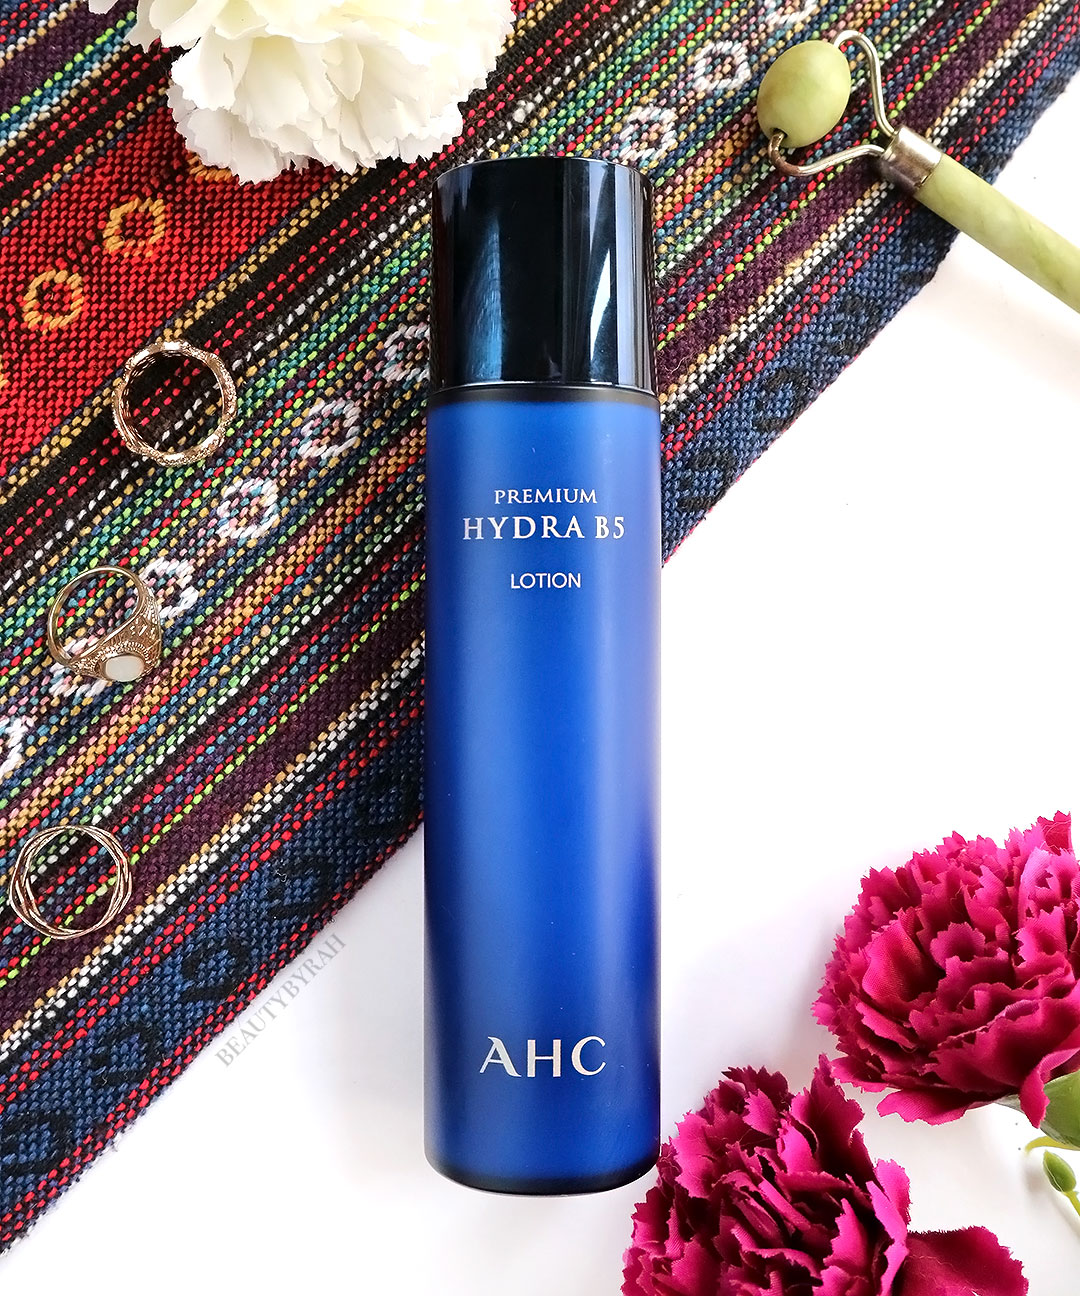 AHC Premium Hydra B5 Lotion Review